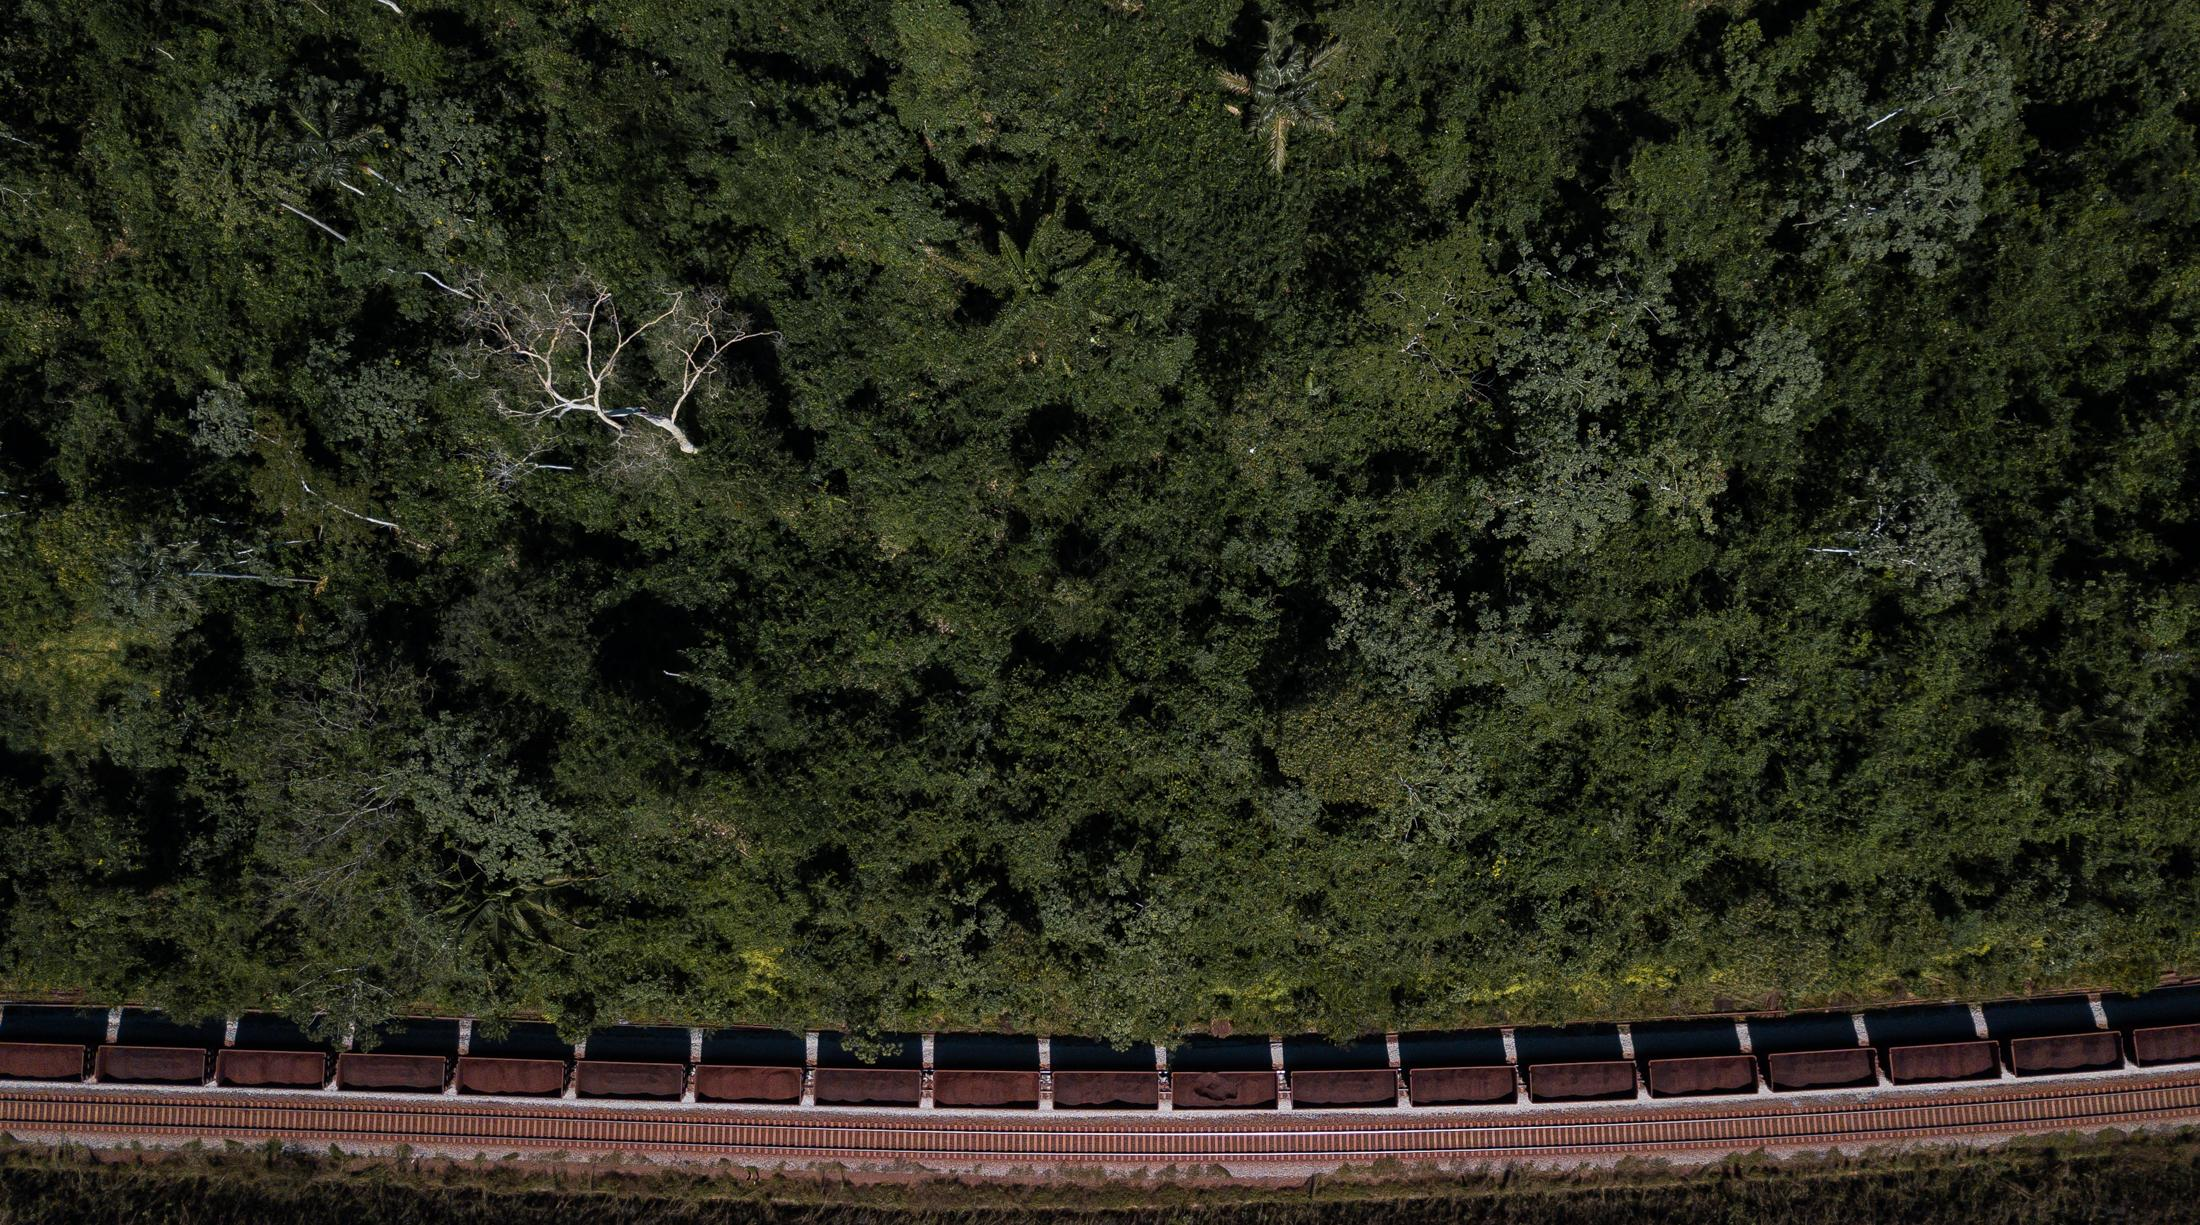 """A train from the mining company, Vale, cuts through the forest with its hundred iron-laden wagons extracted from the Amazon. This picture is part of a long-term project (in progress) a documentary and artistic exploration that seeks to research, witness and document an important issue in times of climate change: the relationship of society with its geography, """"Stress Nexus - Latin America and Caribe Chapter"""" . Parauapebas, Para, Brazil. 2019, July 05."""